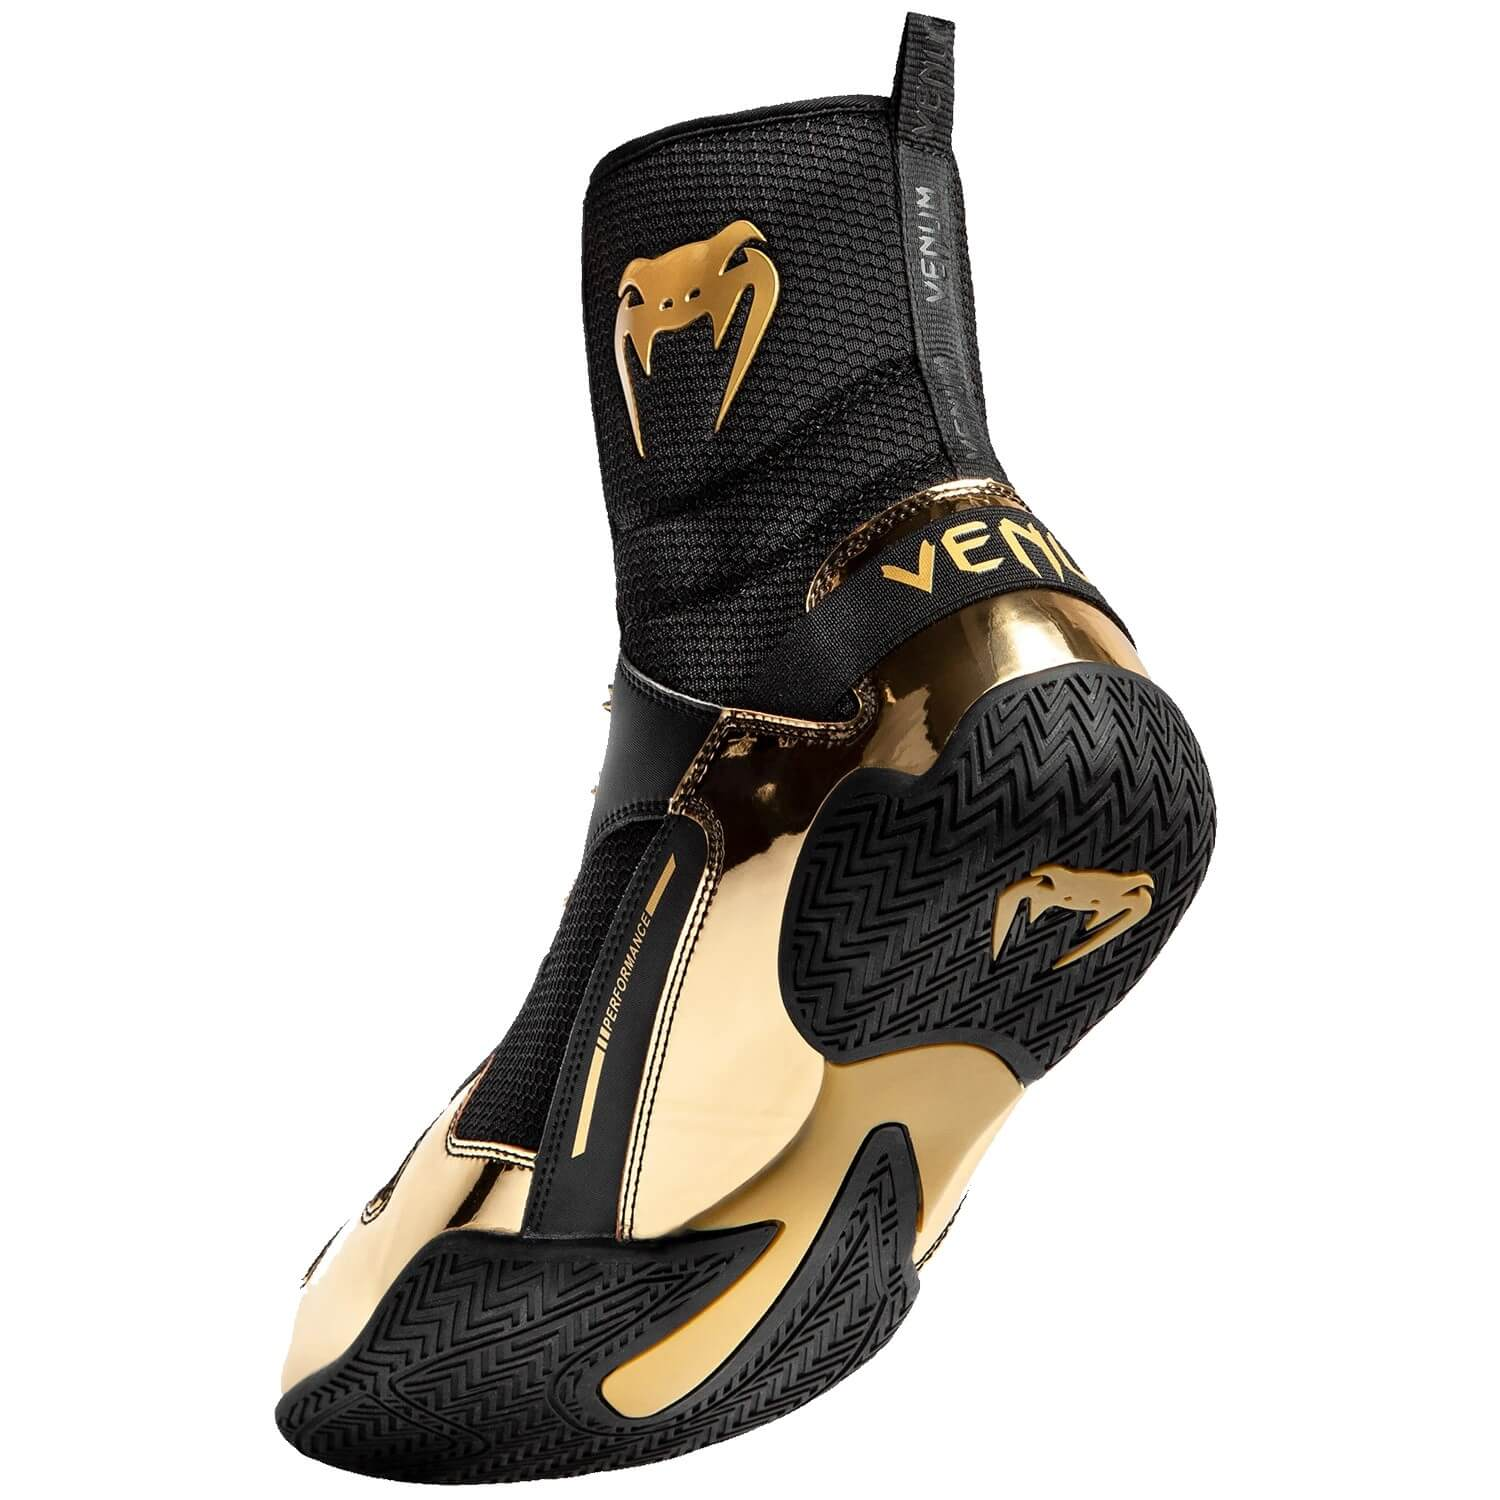 Black and gold Venum Elite rear shot showing upper and outsole